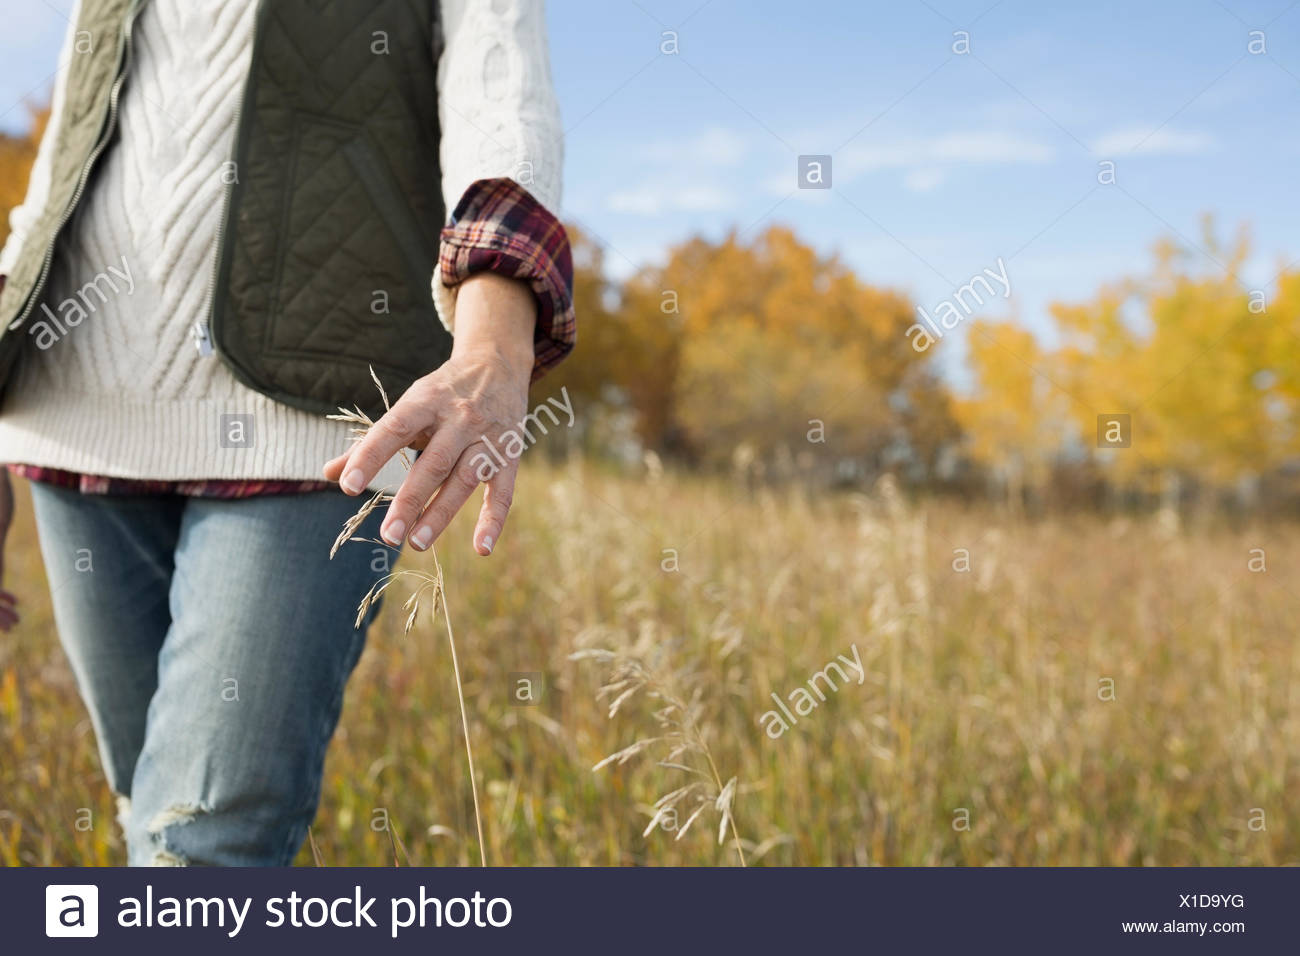 Woman walking in autumn field touching tall grass - Stock Image